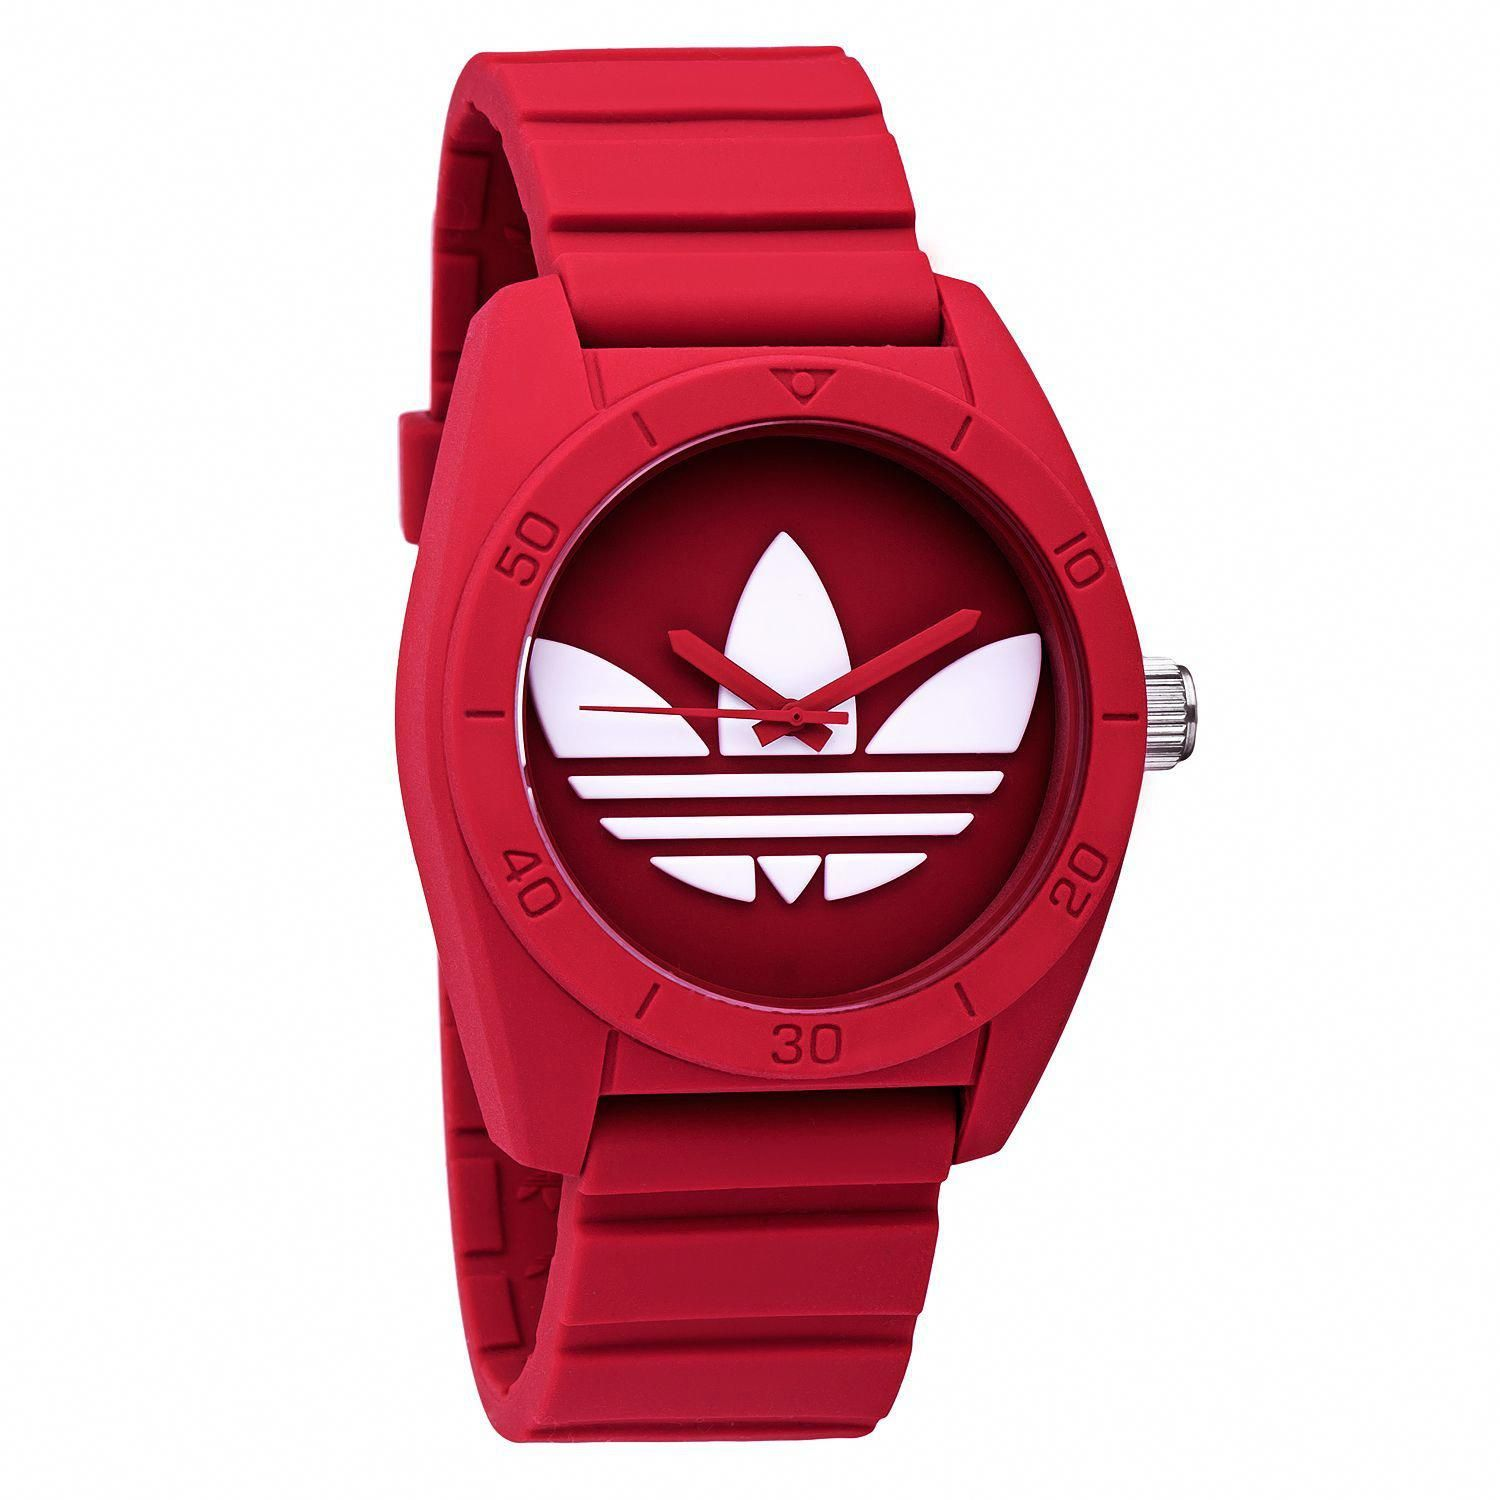 Ardilla casamentero varonil  This men's watch sports the Adidas symbol in white on a red dial. The red  rubber strap completes the look. Case: Pla… | Adidas watch, Sport watches,  Stylish watches